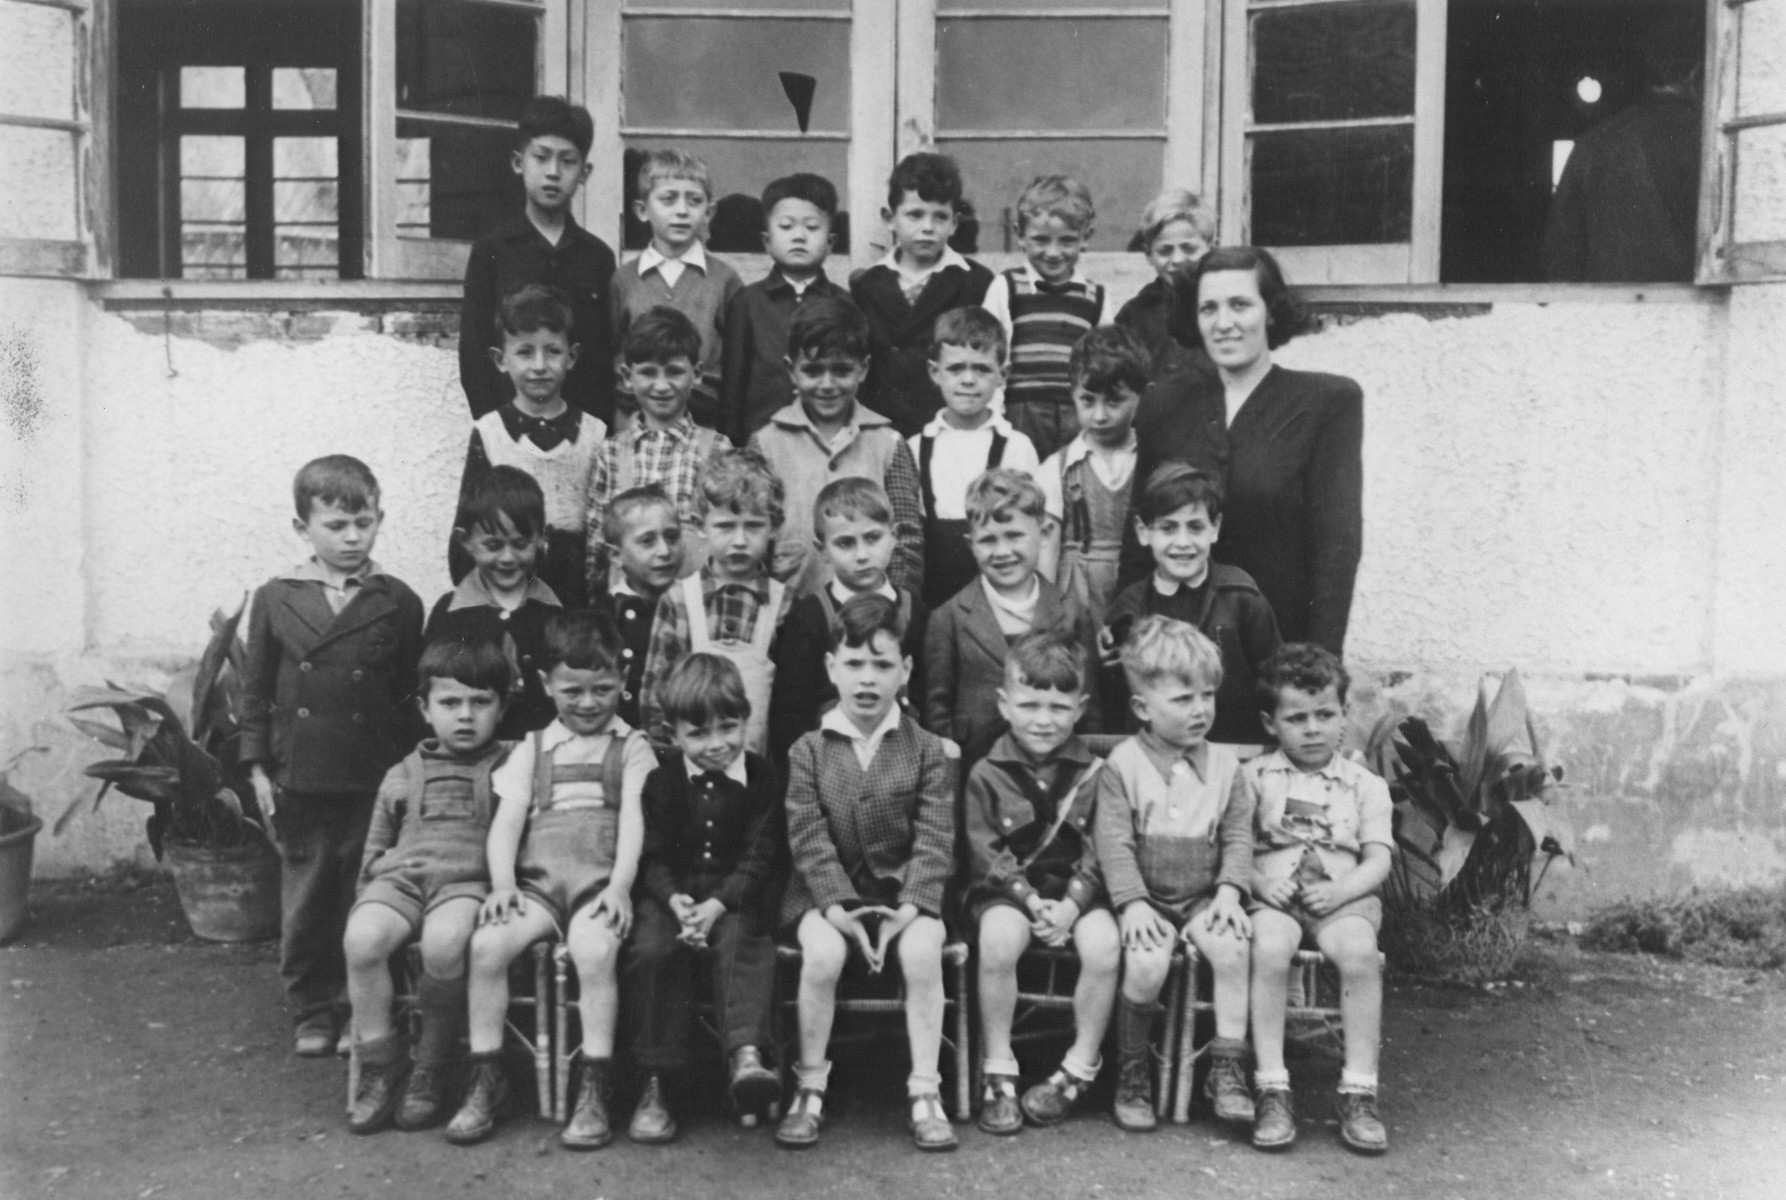 Boys in the Shanghai Jewish Youth Association.  The teacher, standing on the right, is Felicia Lewinski.  The second child from the left in the middle row is Manfred Worm.